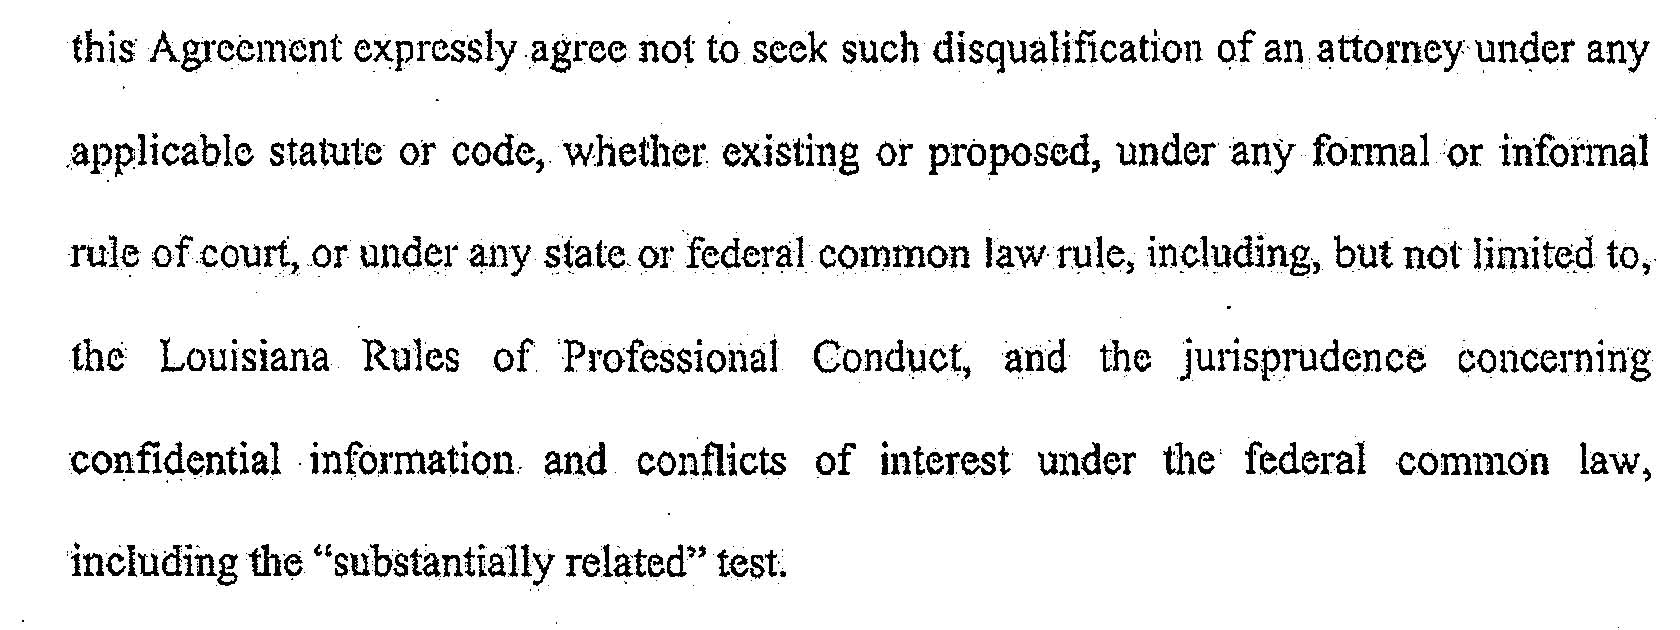 usa-motion-to-disqualify-counsel-2